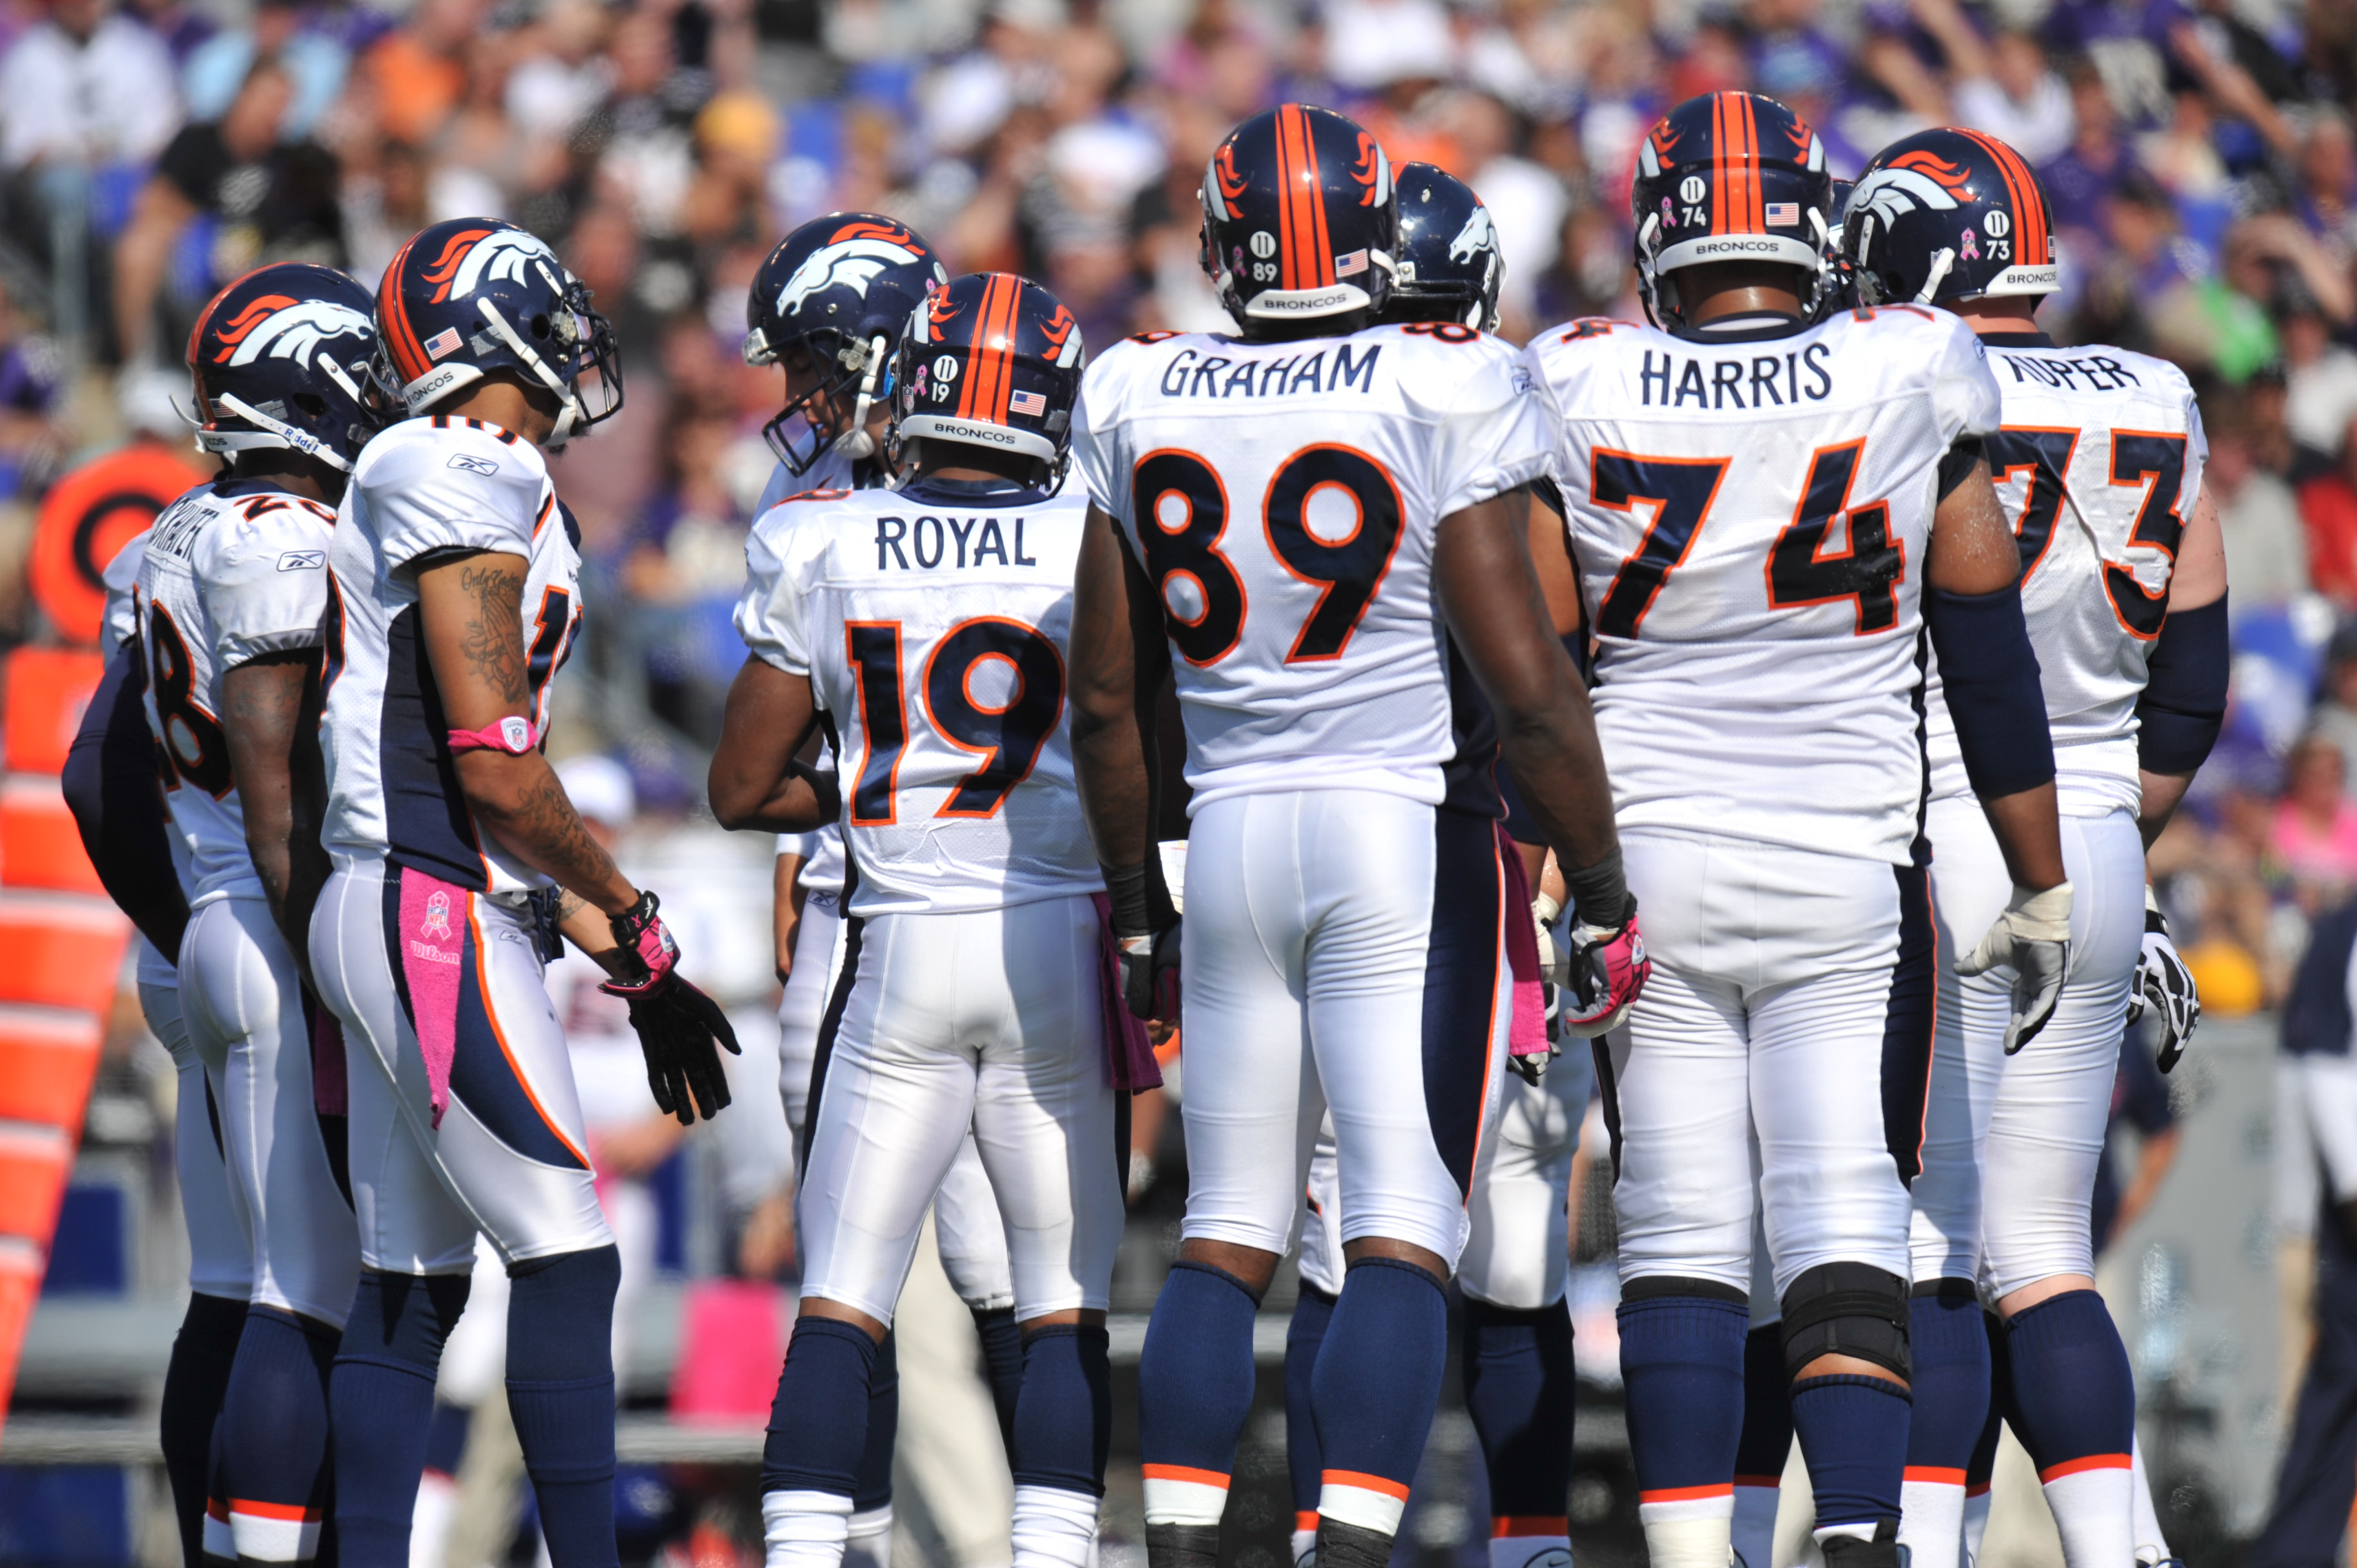 BALTIMORE, MD - OCTOBER 10: The Denver Broncos offense huddles during the game against the Baltimore Ravens at M&T Bank Stadium on October 10, 2010 in Baltimore, Maryland. Players wore pink in recognition of Breast Cancer Awareness Month. The Ravens defea